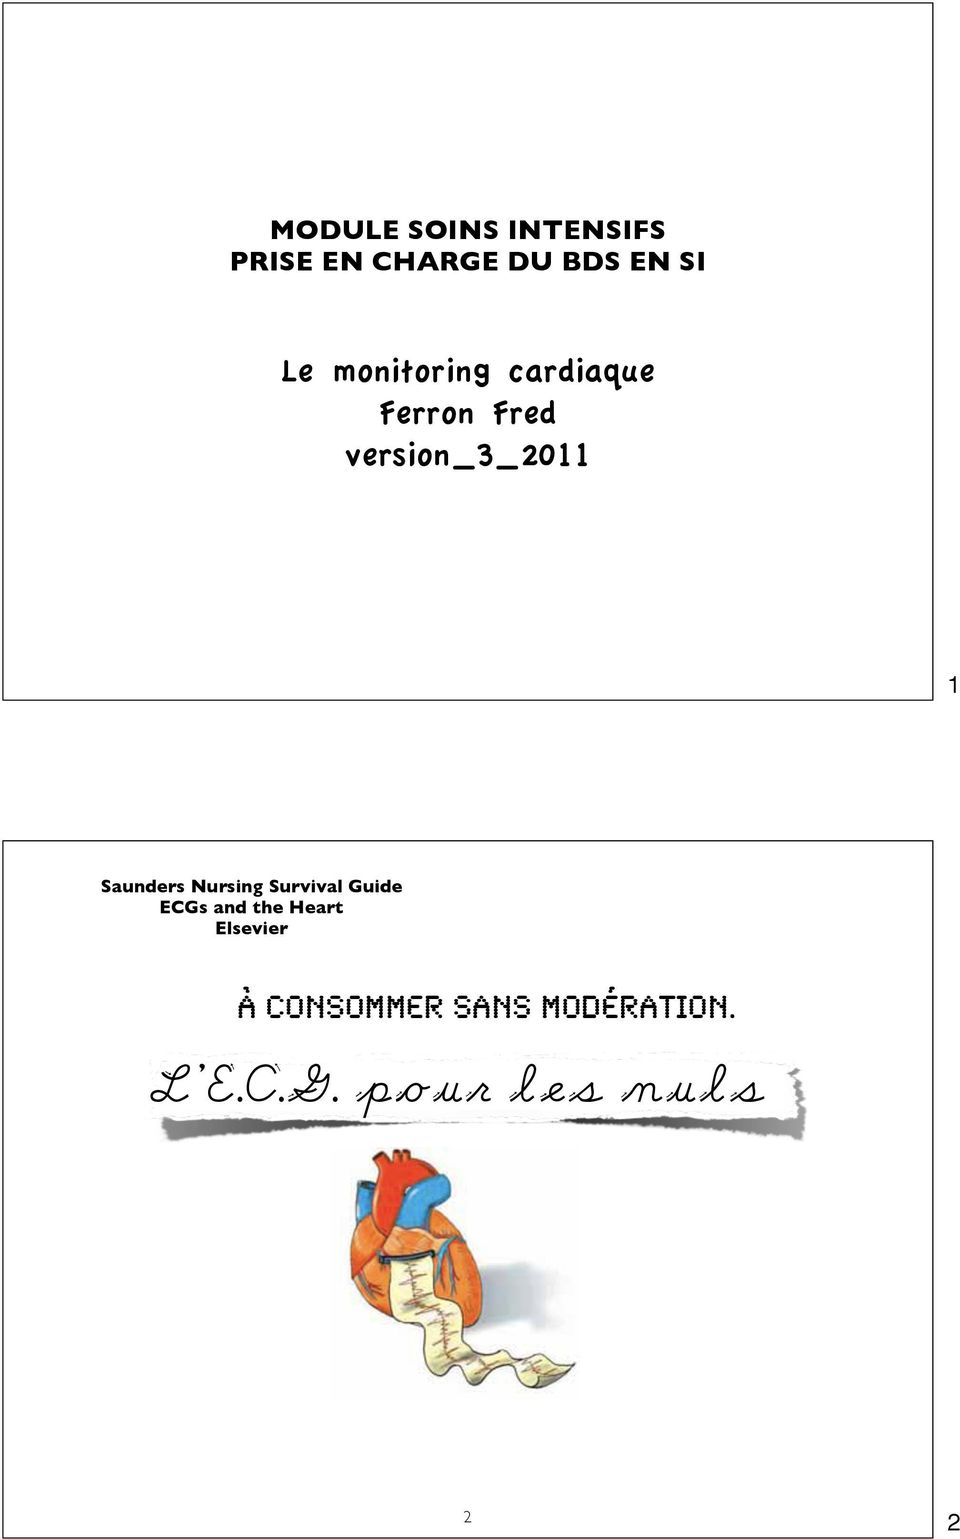 Saunders Nursing Survival Guide ECGs and the Heart